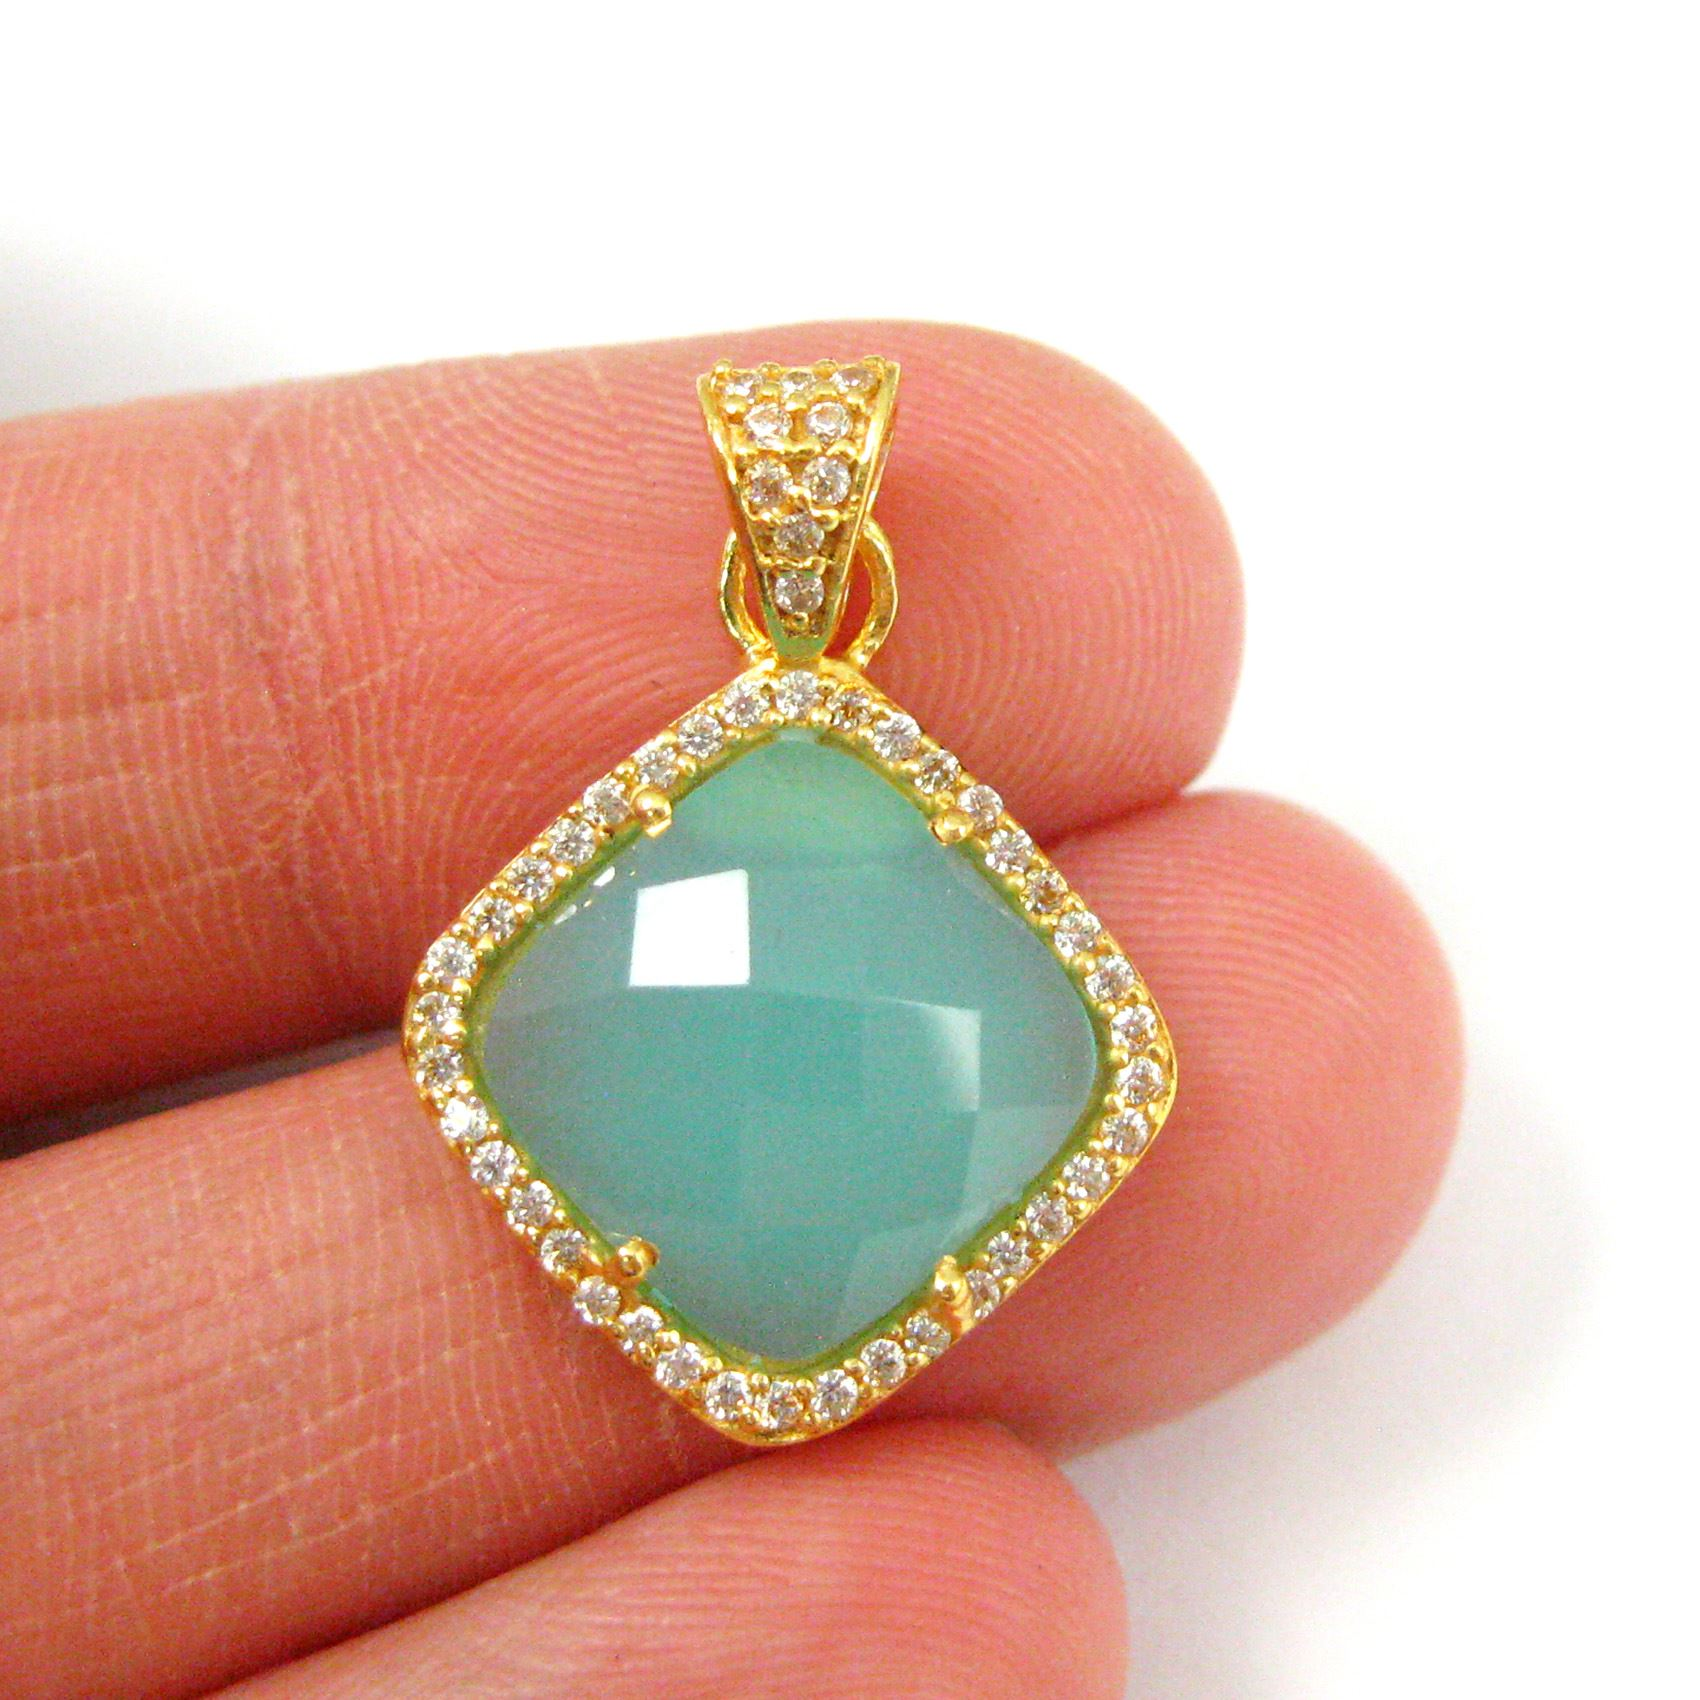 Gold plated Sterling Silver Pave Bezel Gemstone Pendant - Cubic Zirconia Pave Setting -  Diamond Shape Faceted Stone- Peru Chalcedony - 17mm